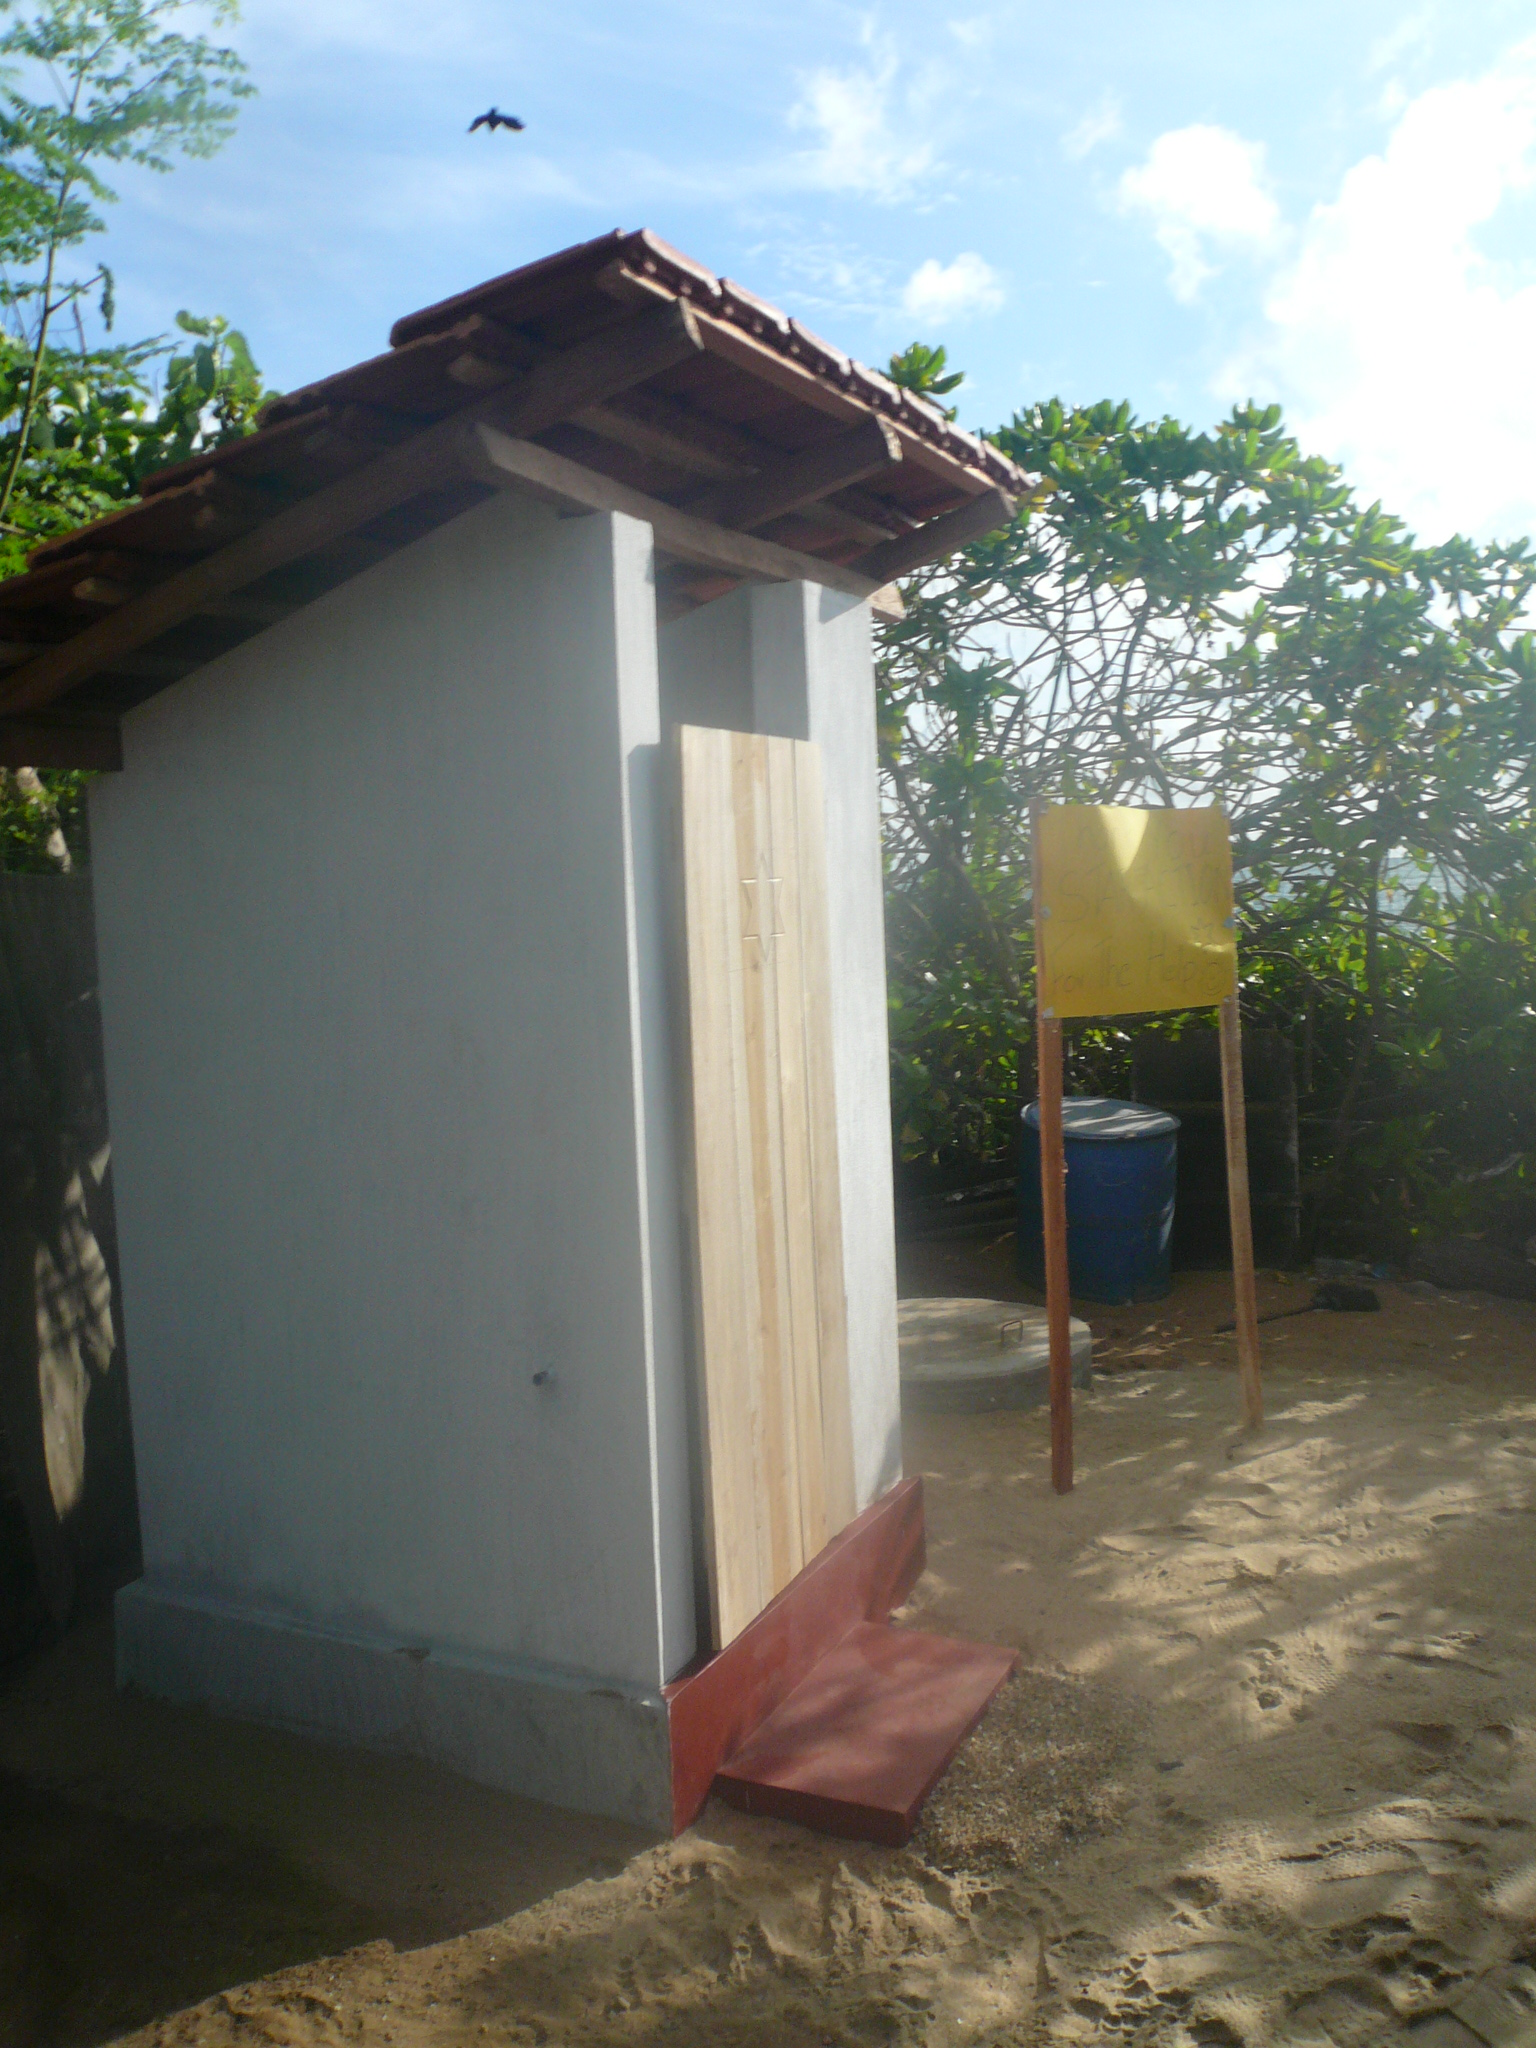 A finished toilet